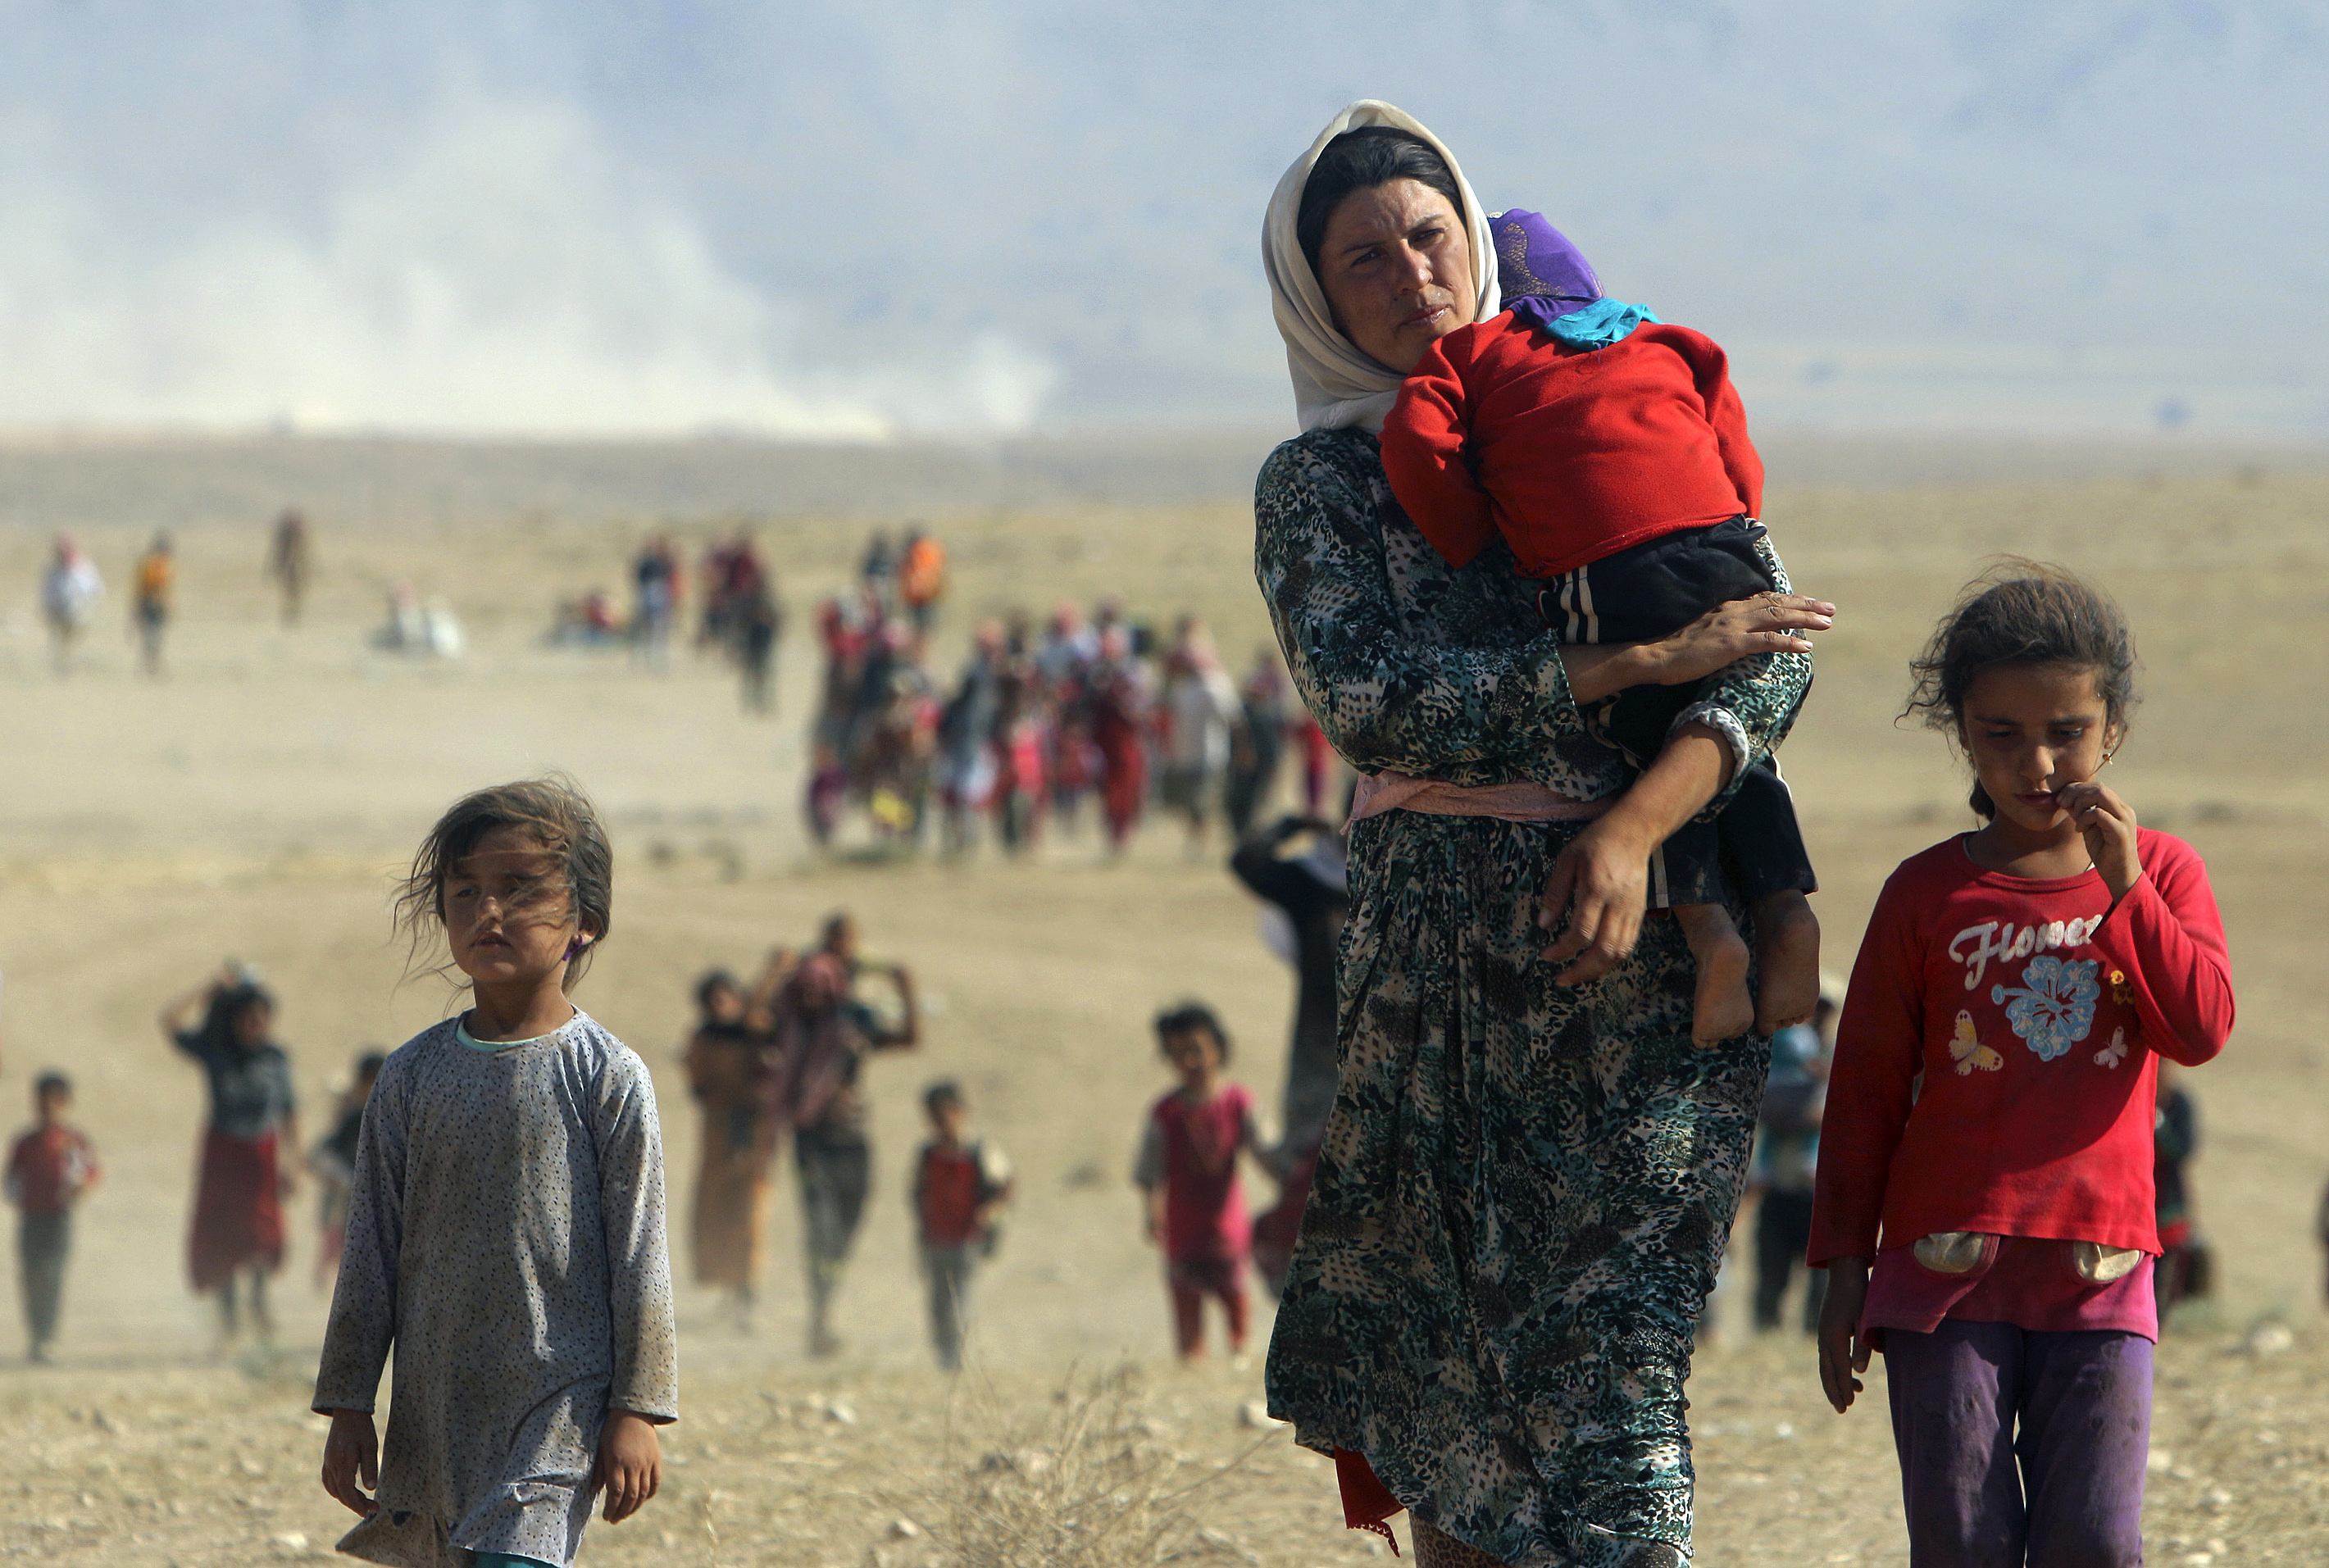 Displaced Yezidi people flee violence from forces loyal to ISIS, near the Syrian border town of Elierbeh, on Aug. 11, 2014